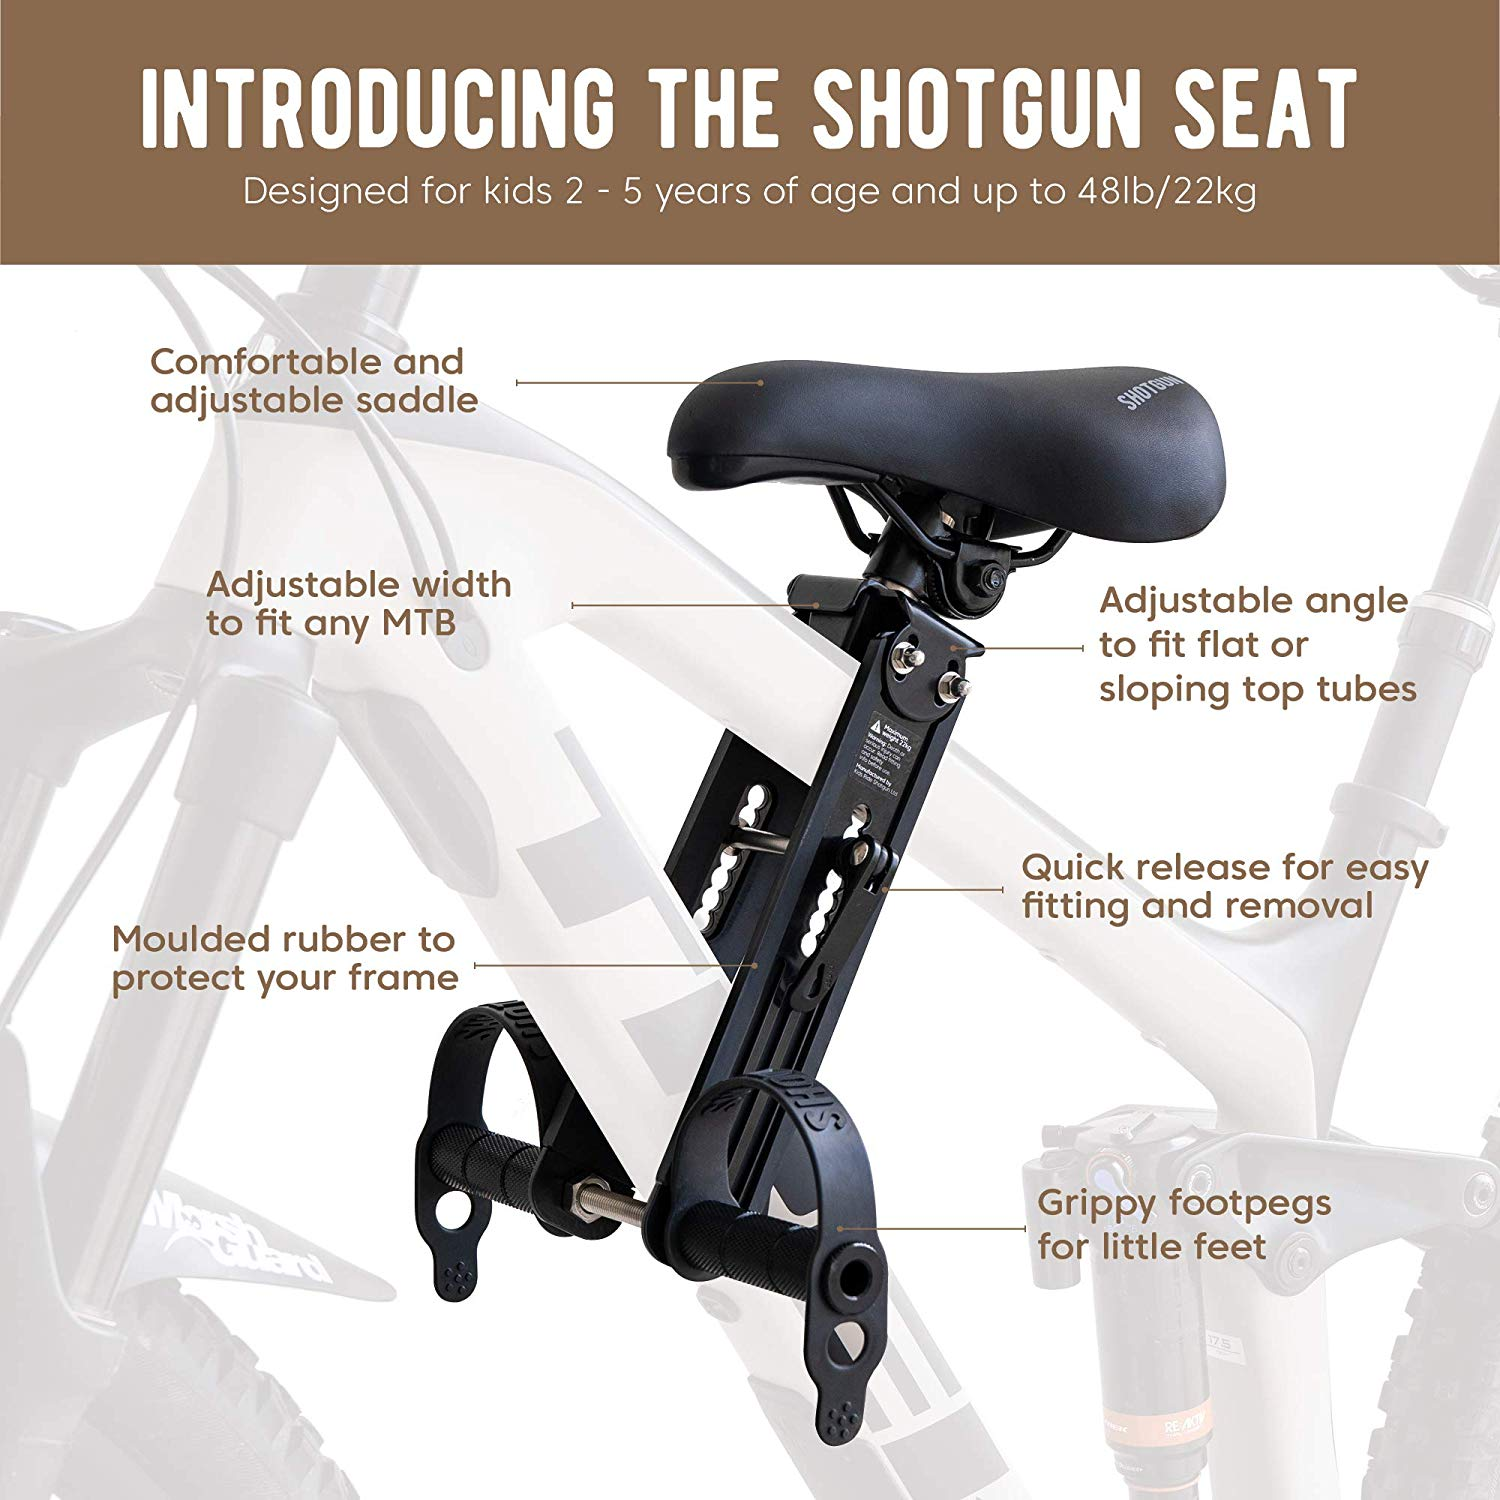 SHOTGUN Kids Bike Seat for Mountain Bikes | Front Mounted Bicycle Seats for Children 2-5 Years (up to 48 Pound) | Compatible with All Adult MTB | Easy to Install